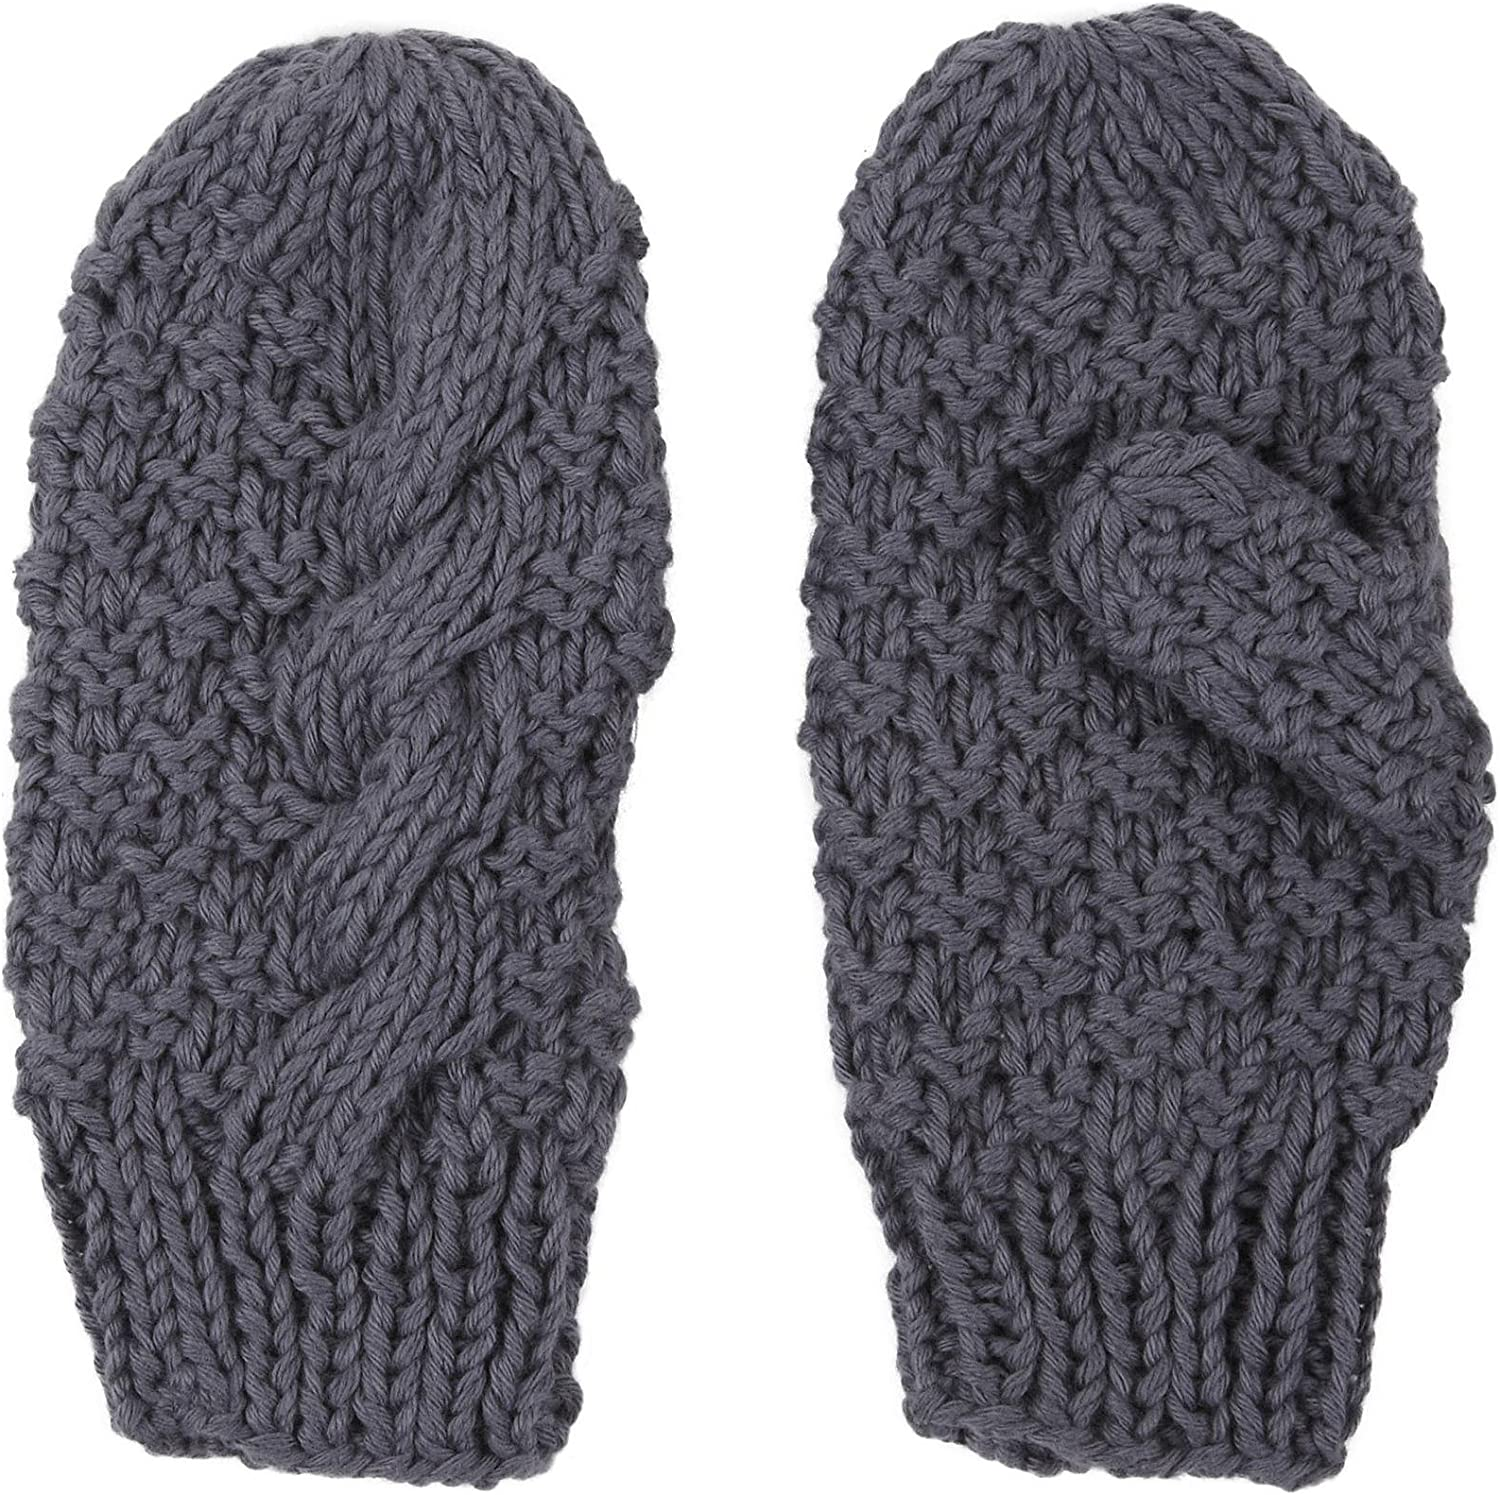 Pewter 2H Hand Knits Little Unisex Child Knit Mittens